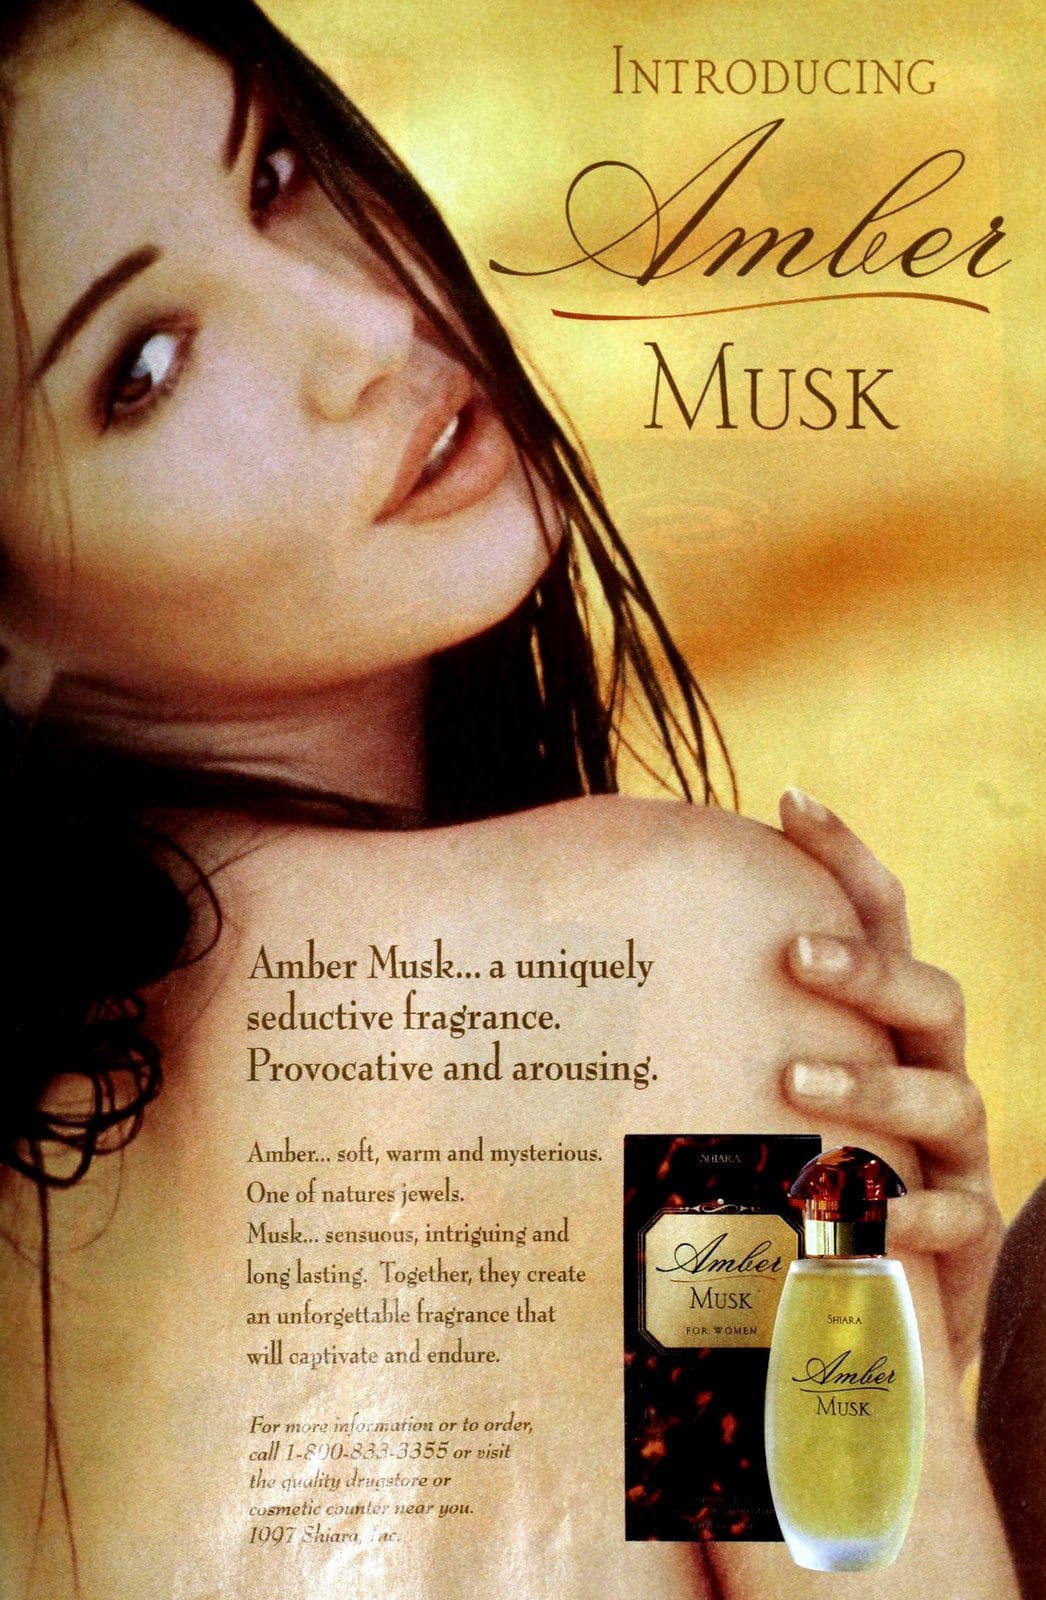 Popular vintage perfumes from the '90s - Amber Musk for women (1997) at ClickAmericana com